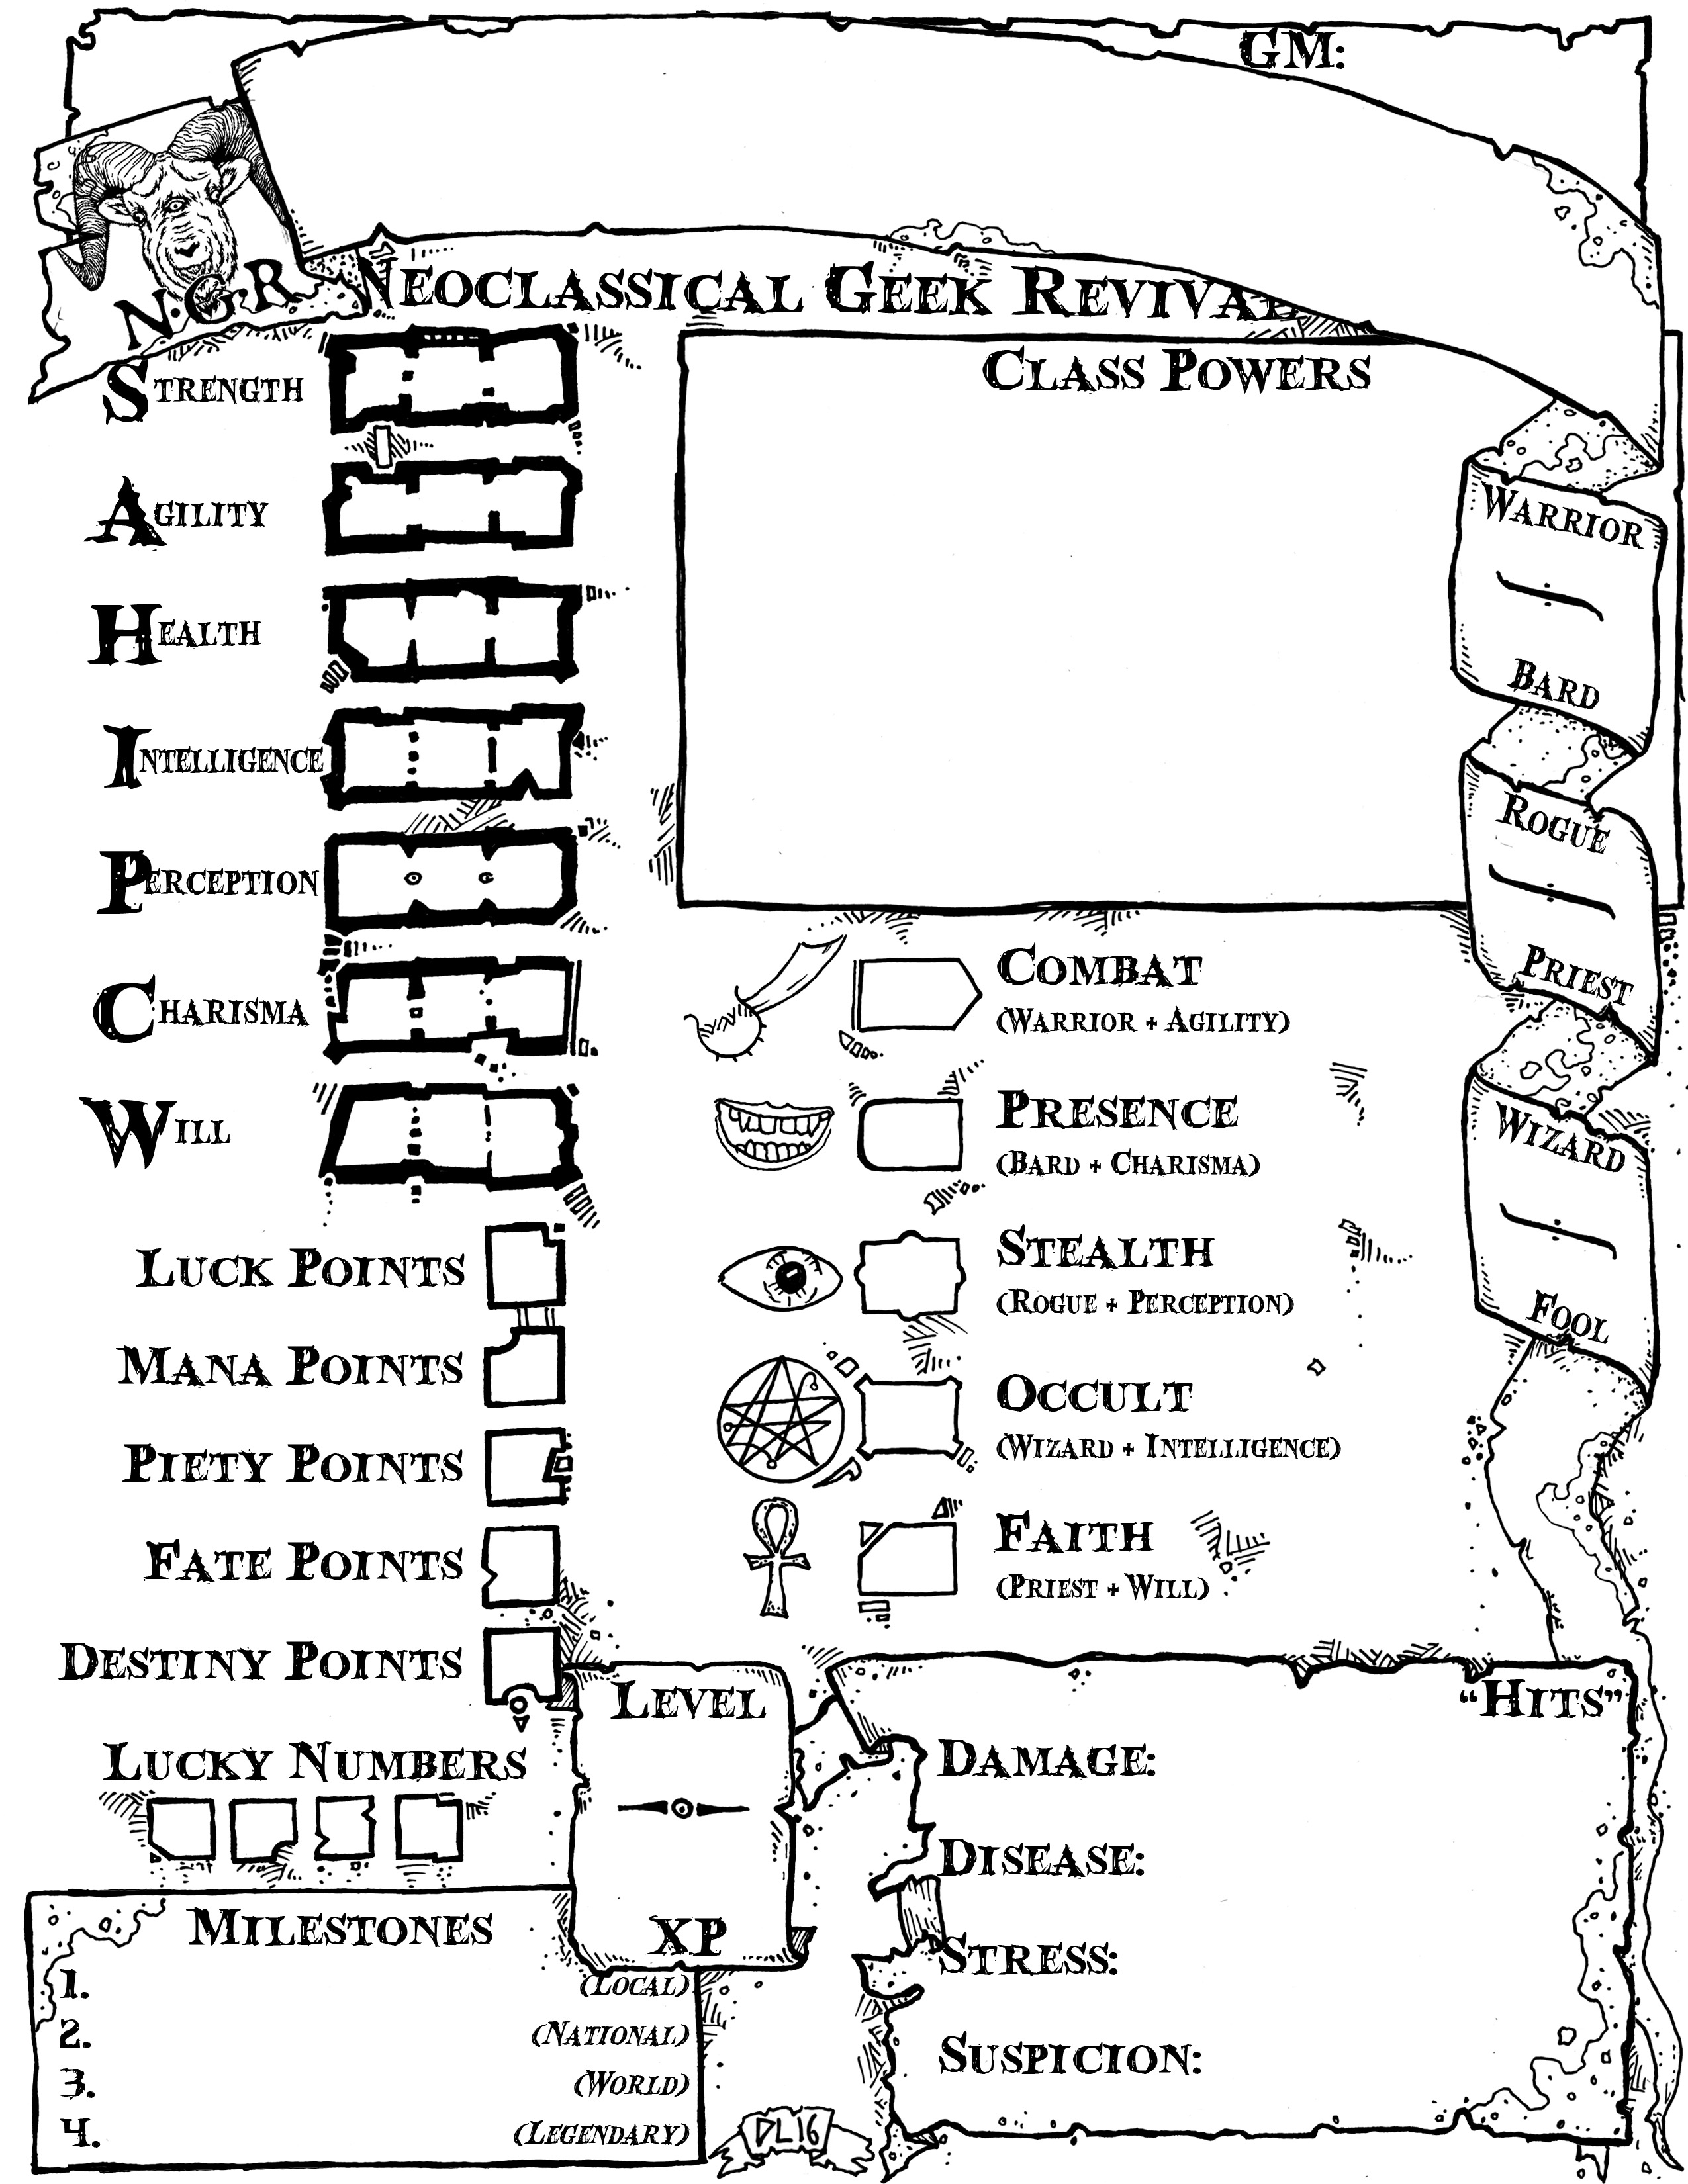 A New Neoclassical Geek Revival Sheet